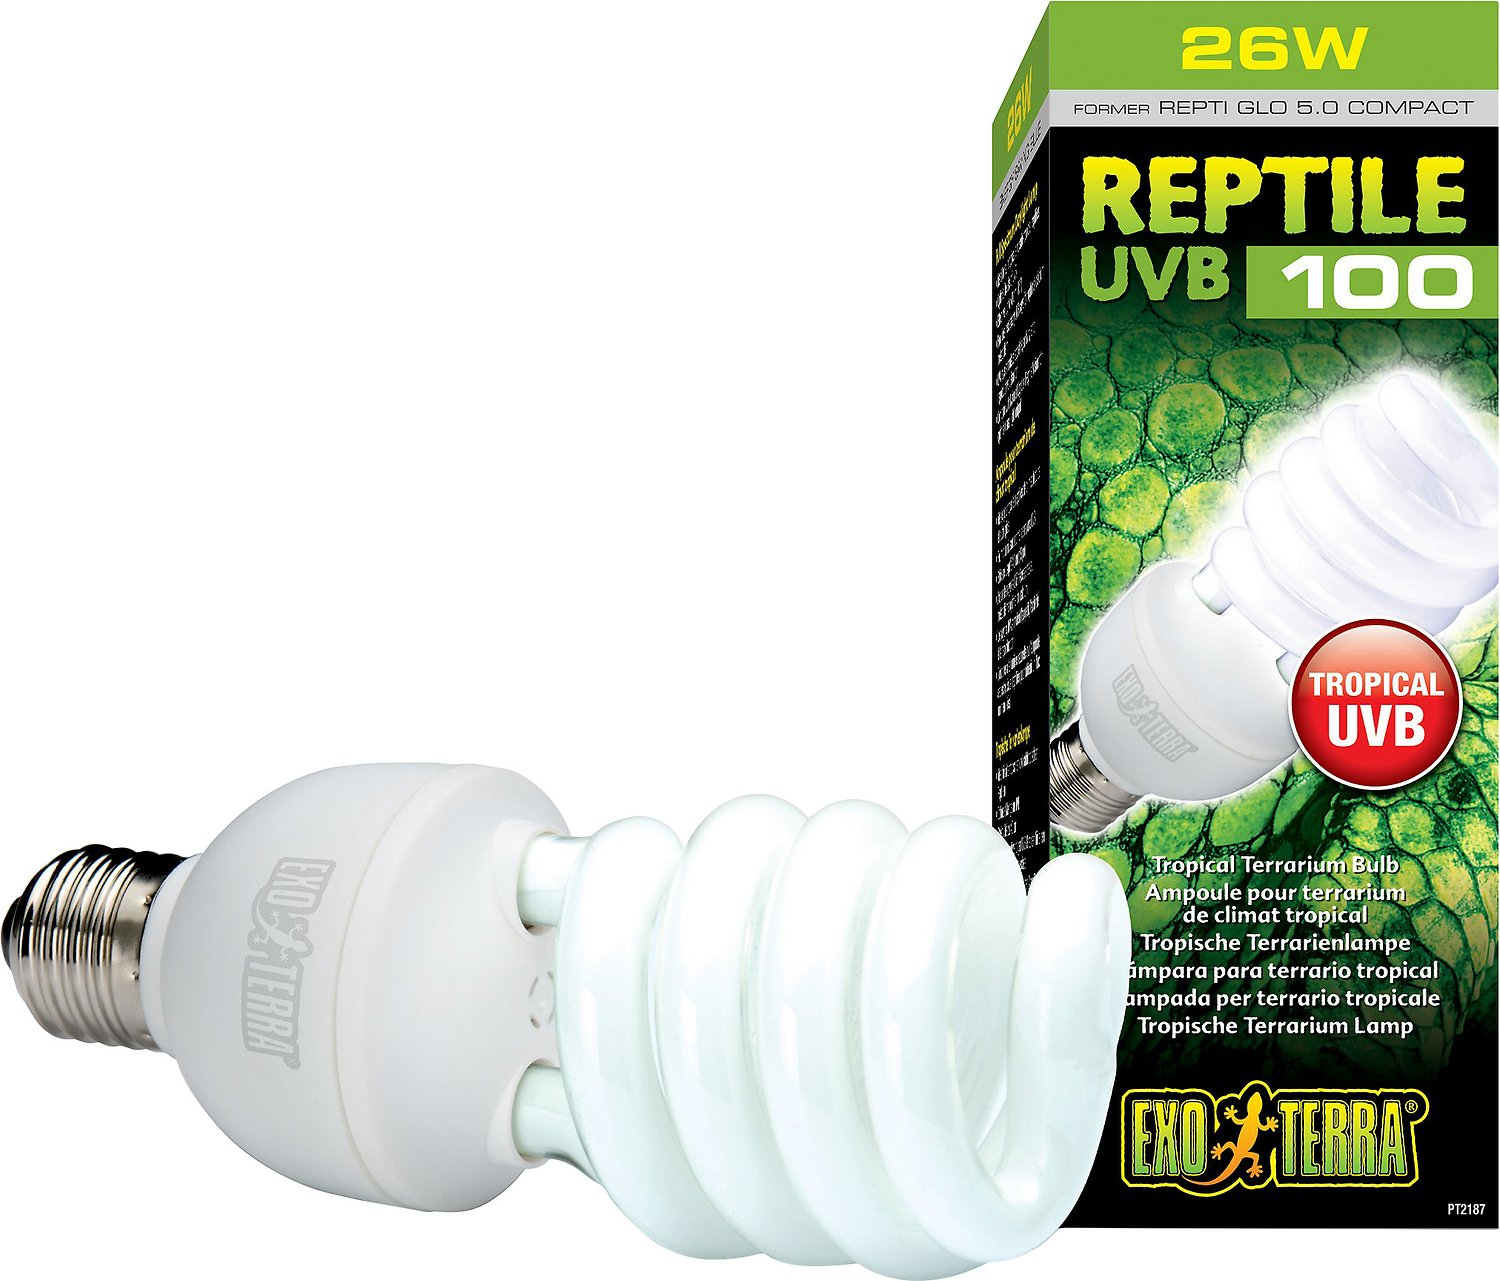 Exo terra tropical uvb 100 reptile lamp 26 w bulb chewy roll over image to zoom in arubaitofo Choice Image